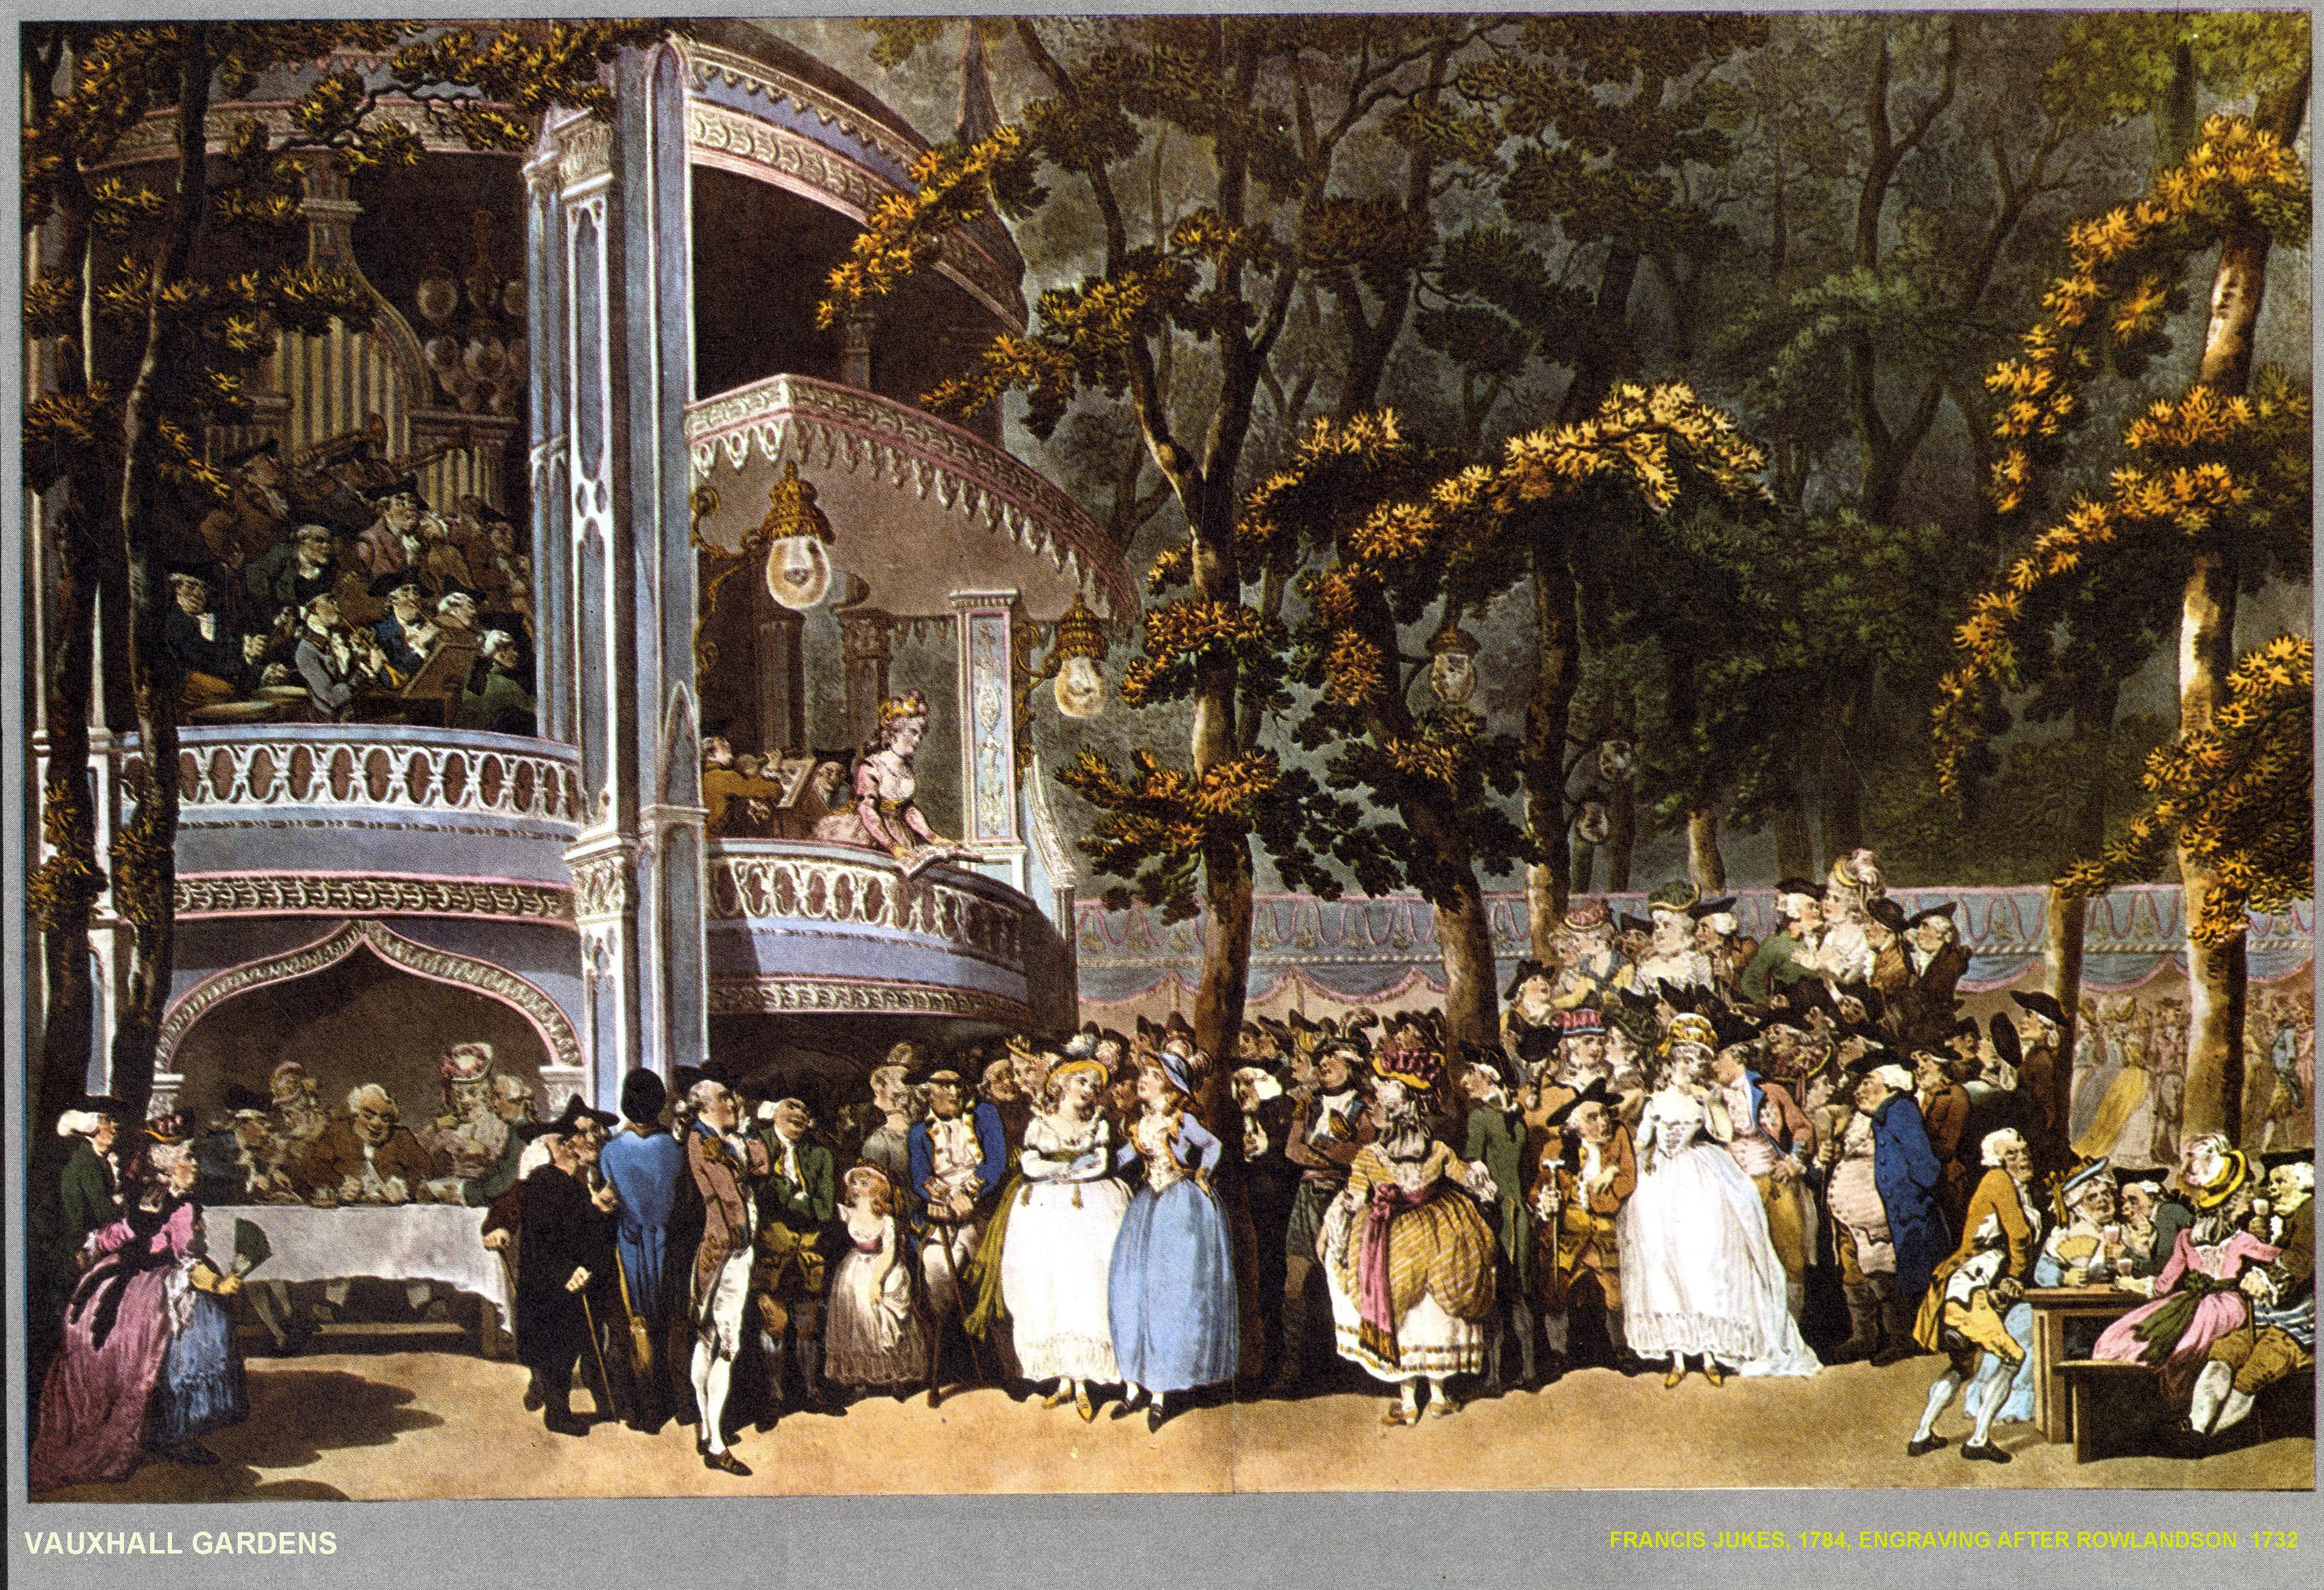 An illustration of Vauxhall Gardens by Thomas Rowlandson